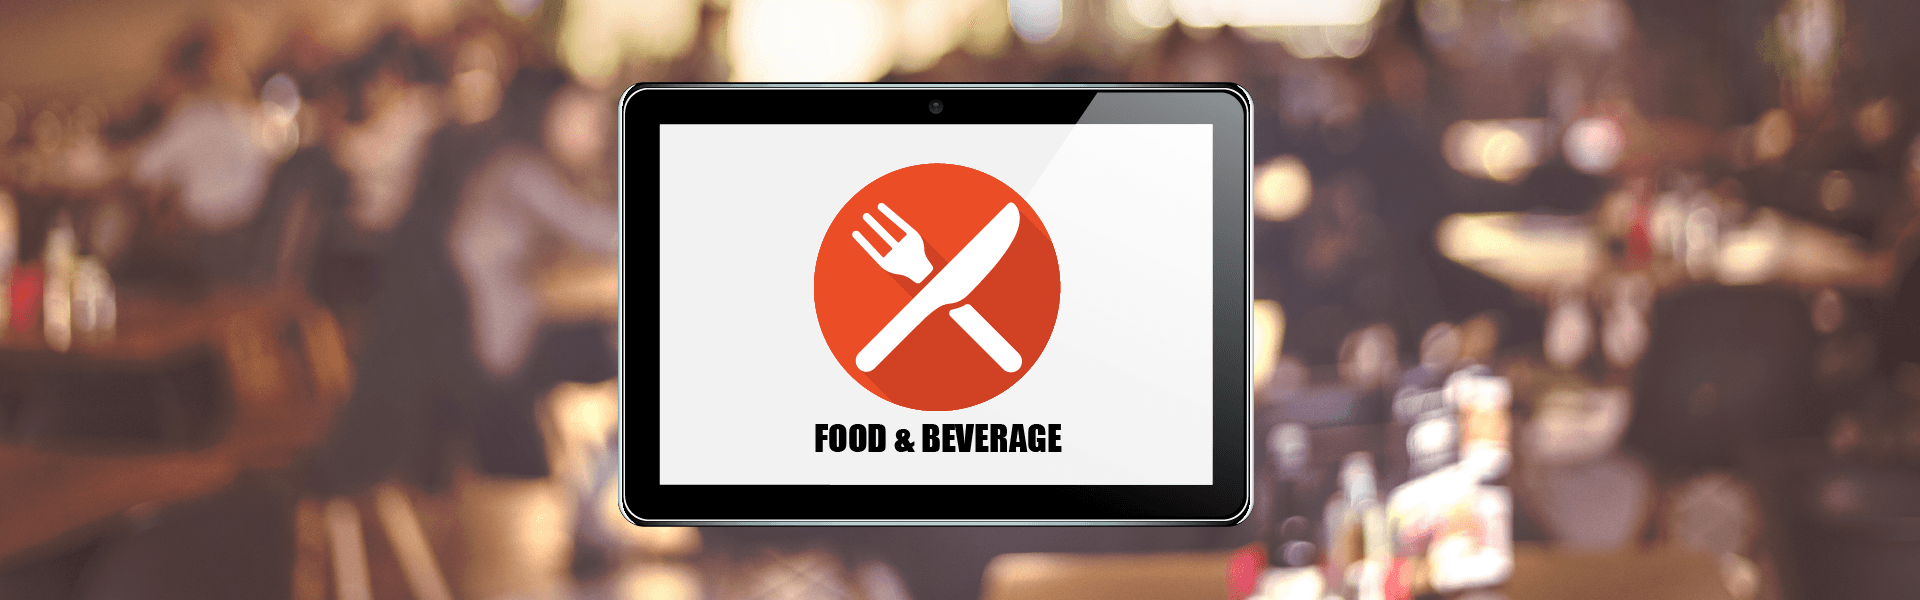 Food & Beverage Software Preview Video